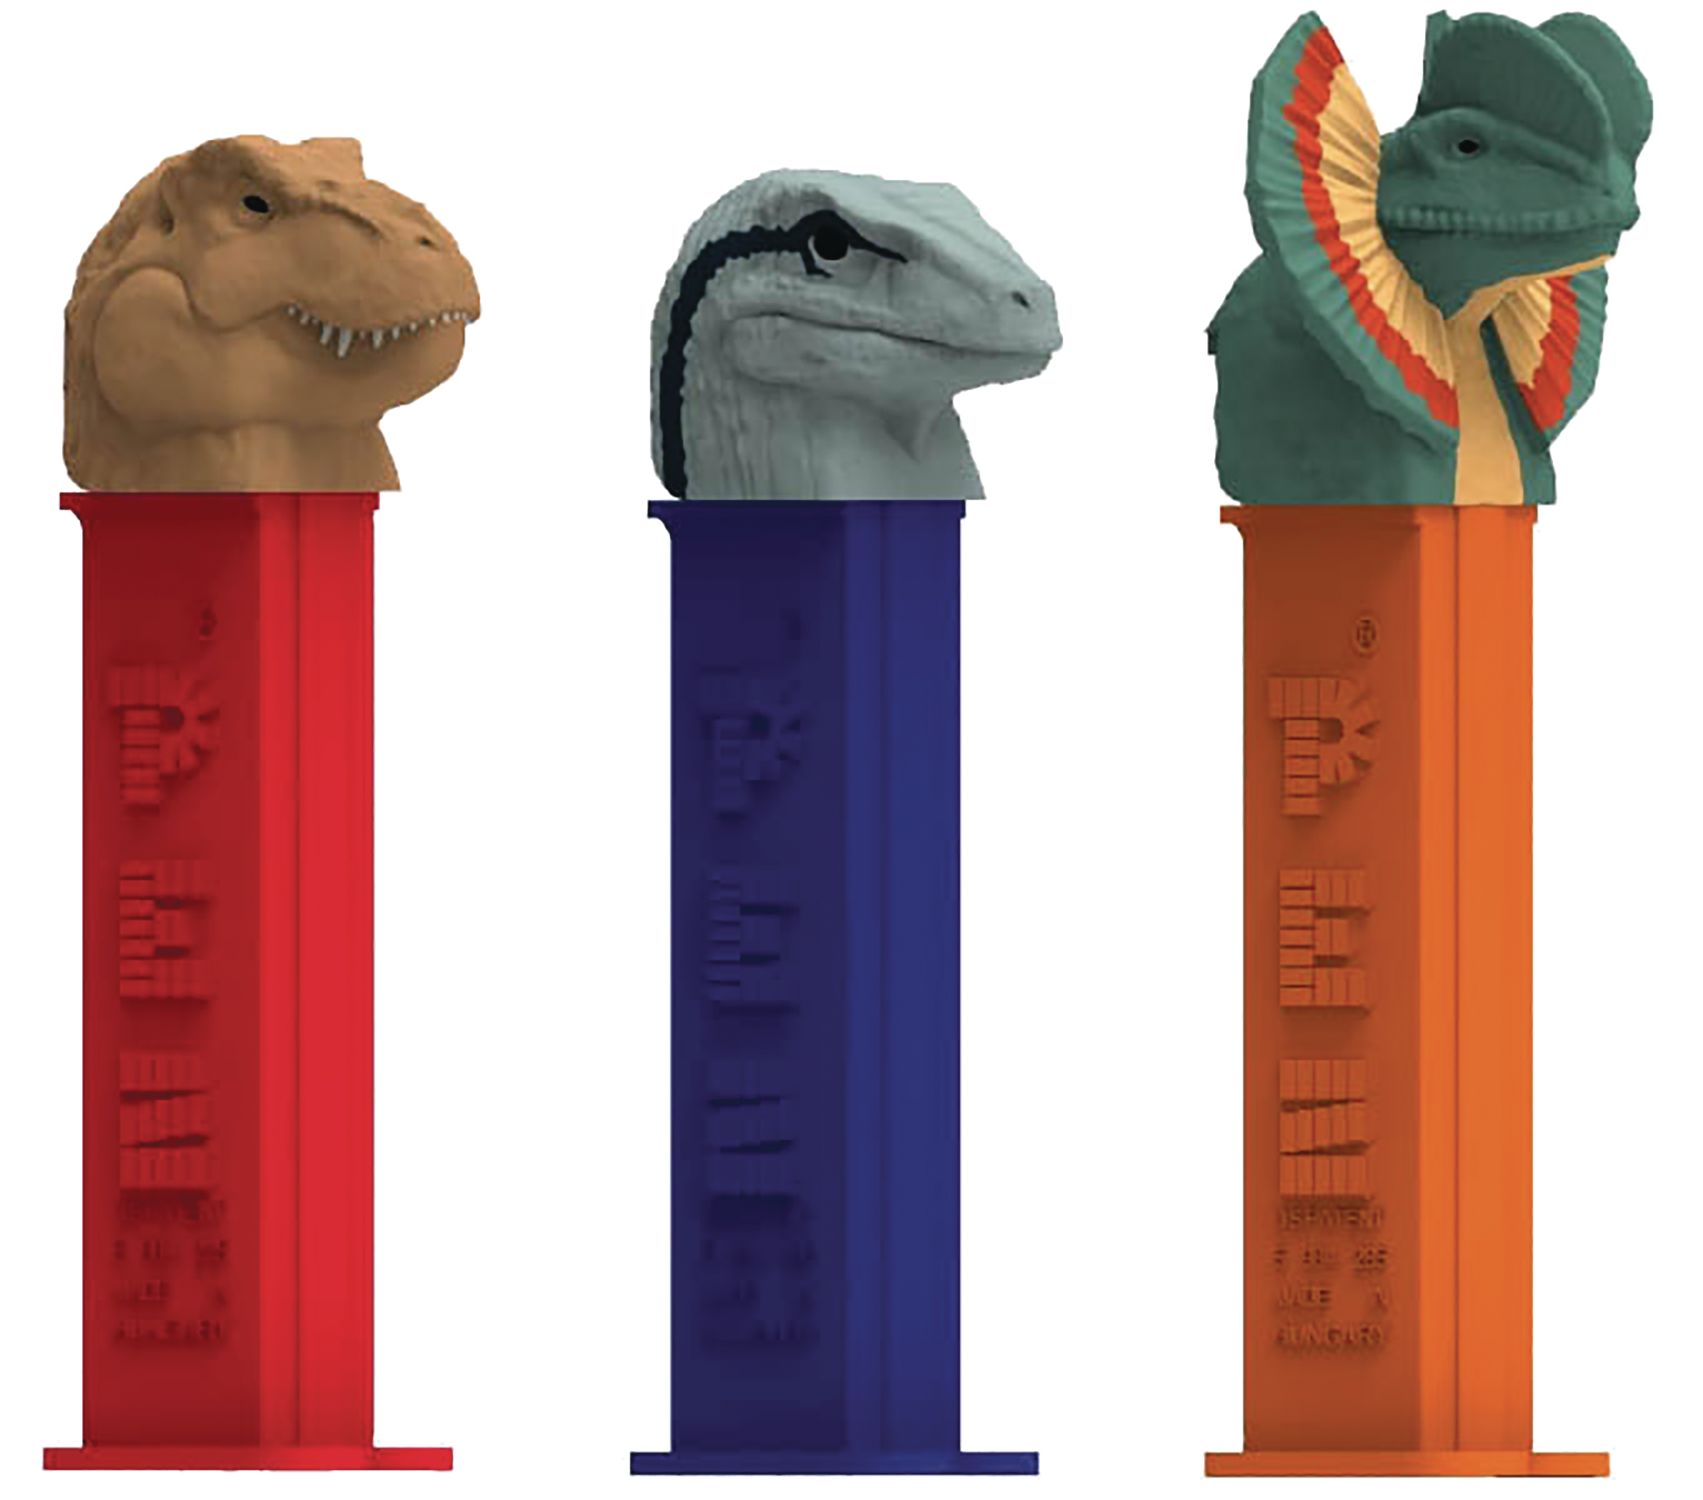 Jurassic World Pez Dispensers